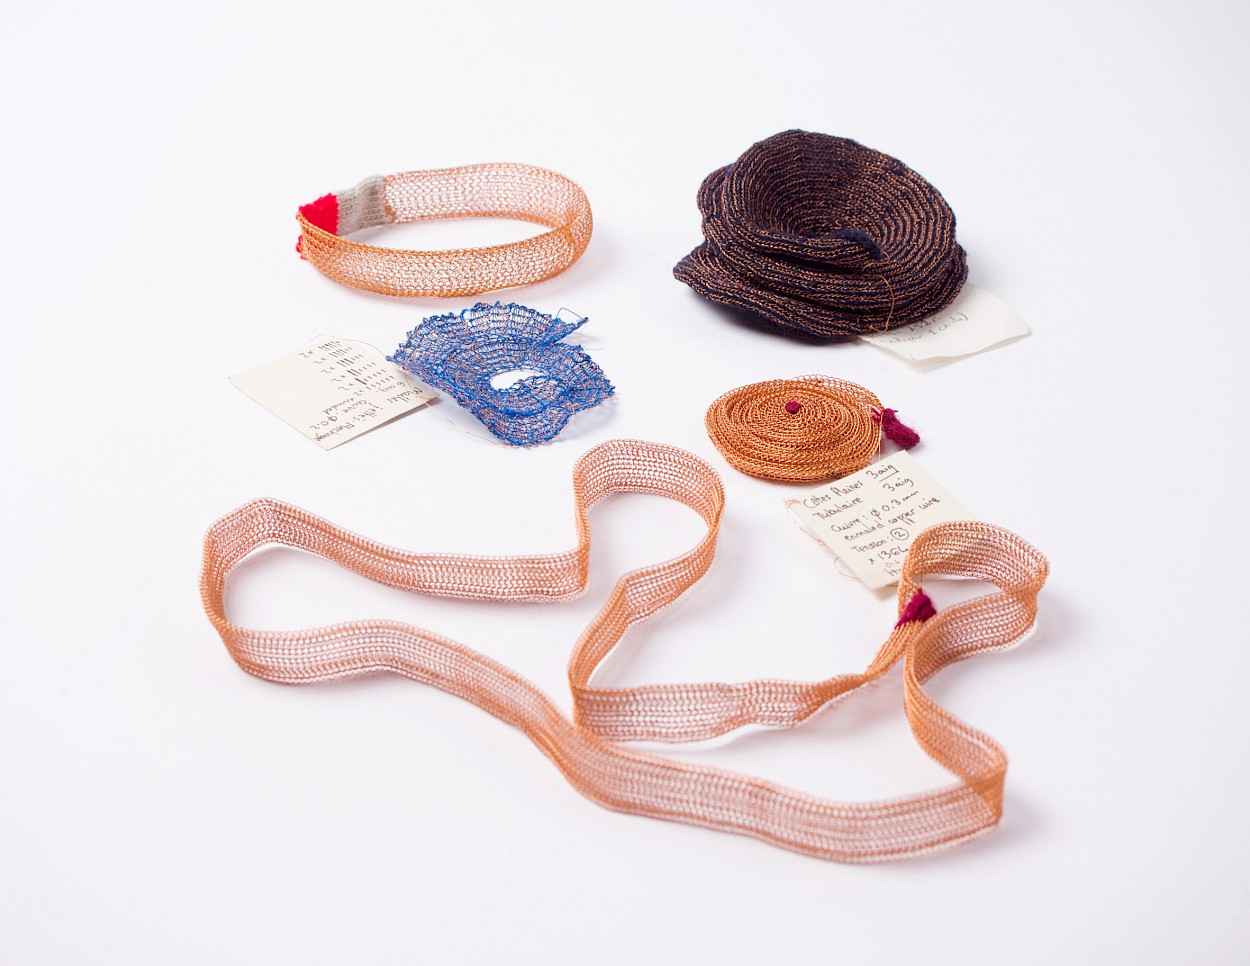 Knitted coils